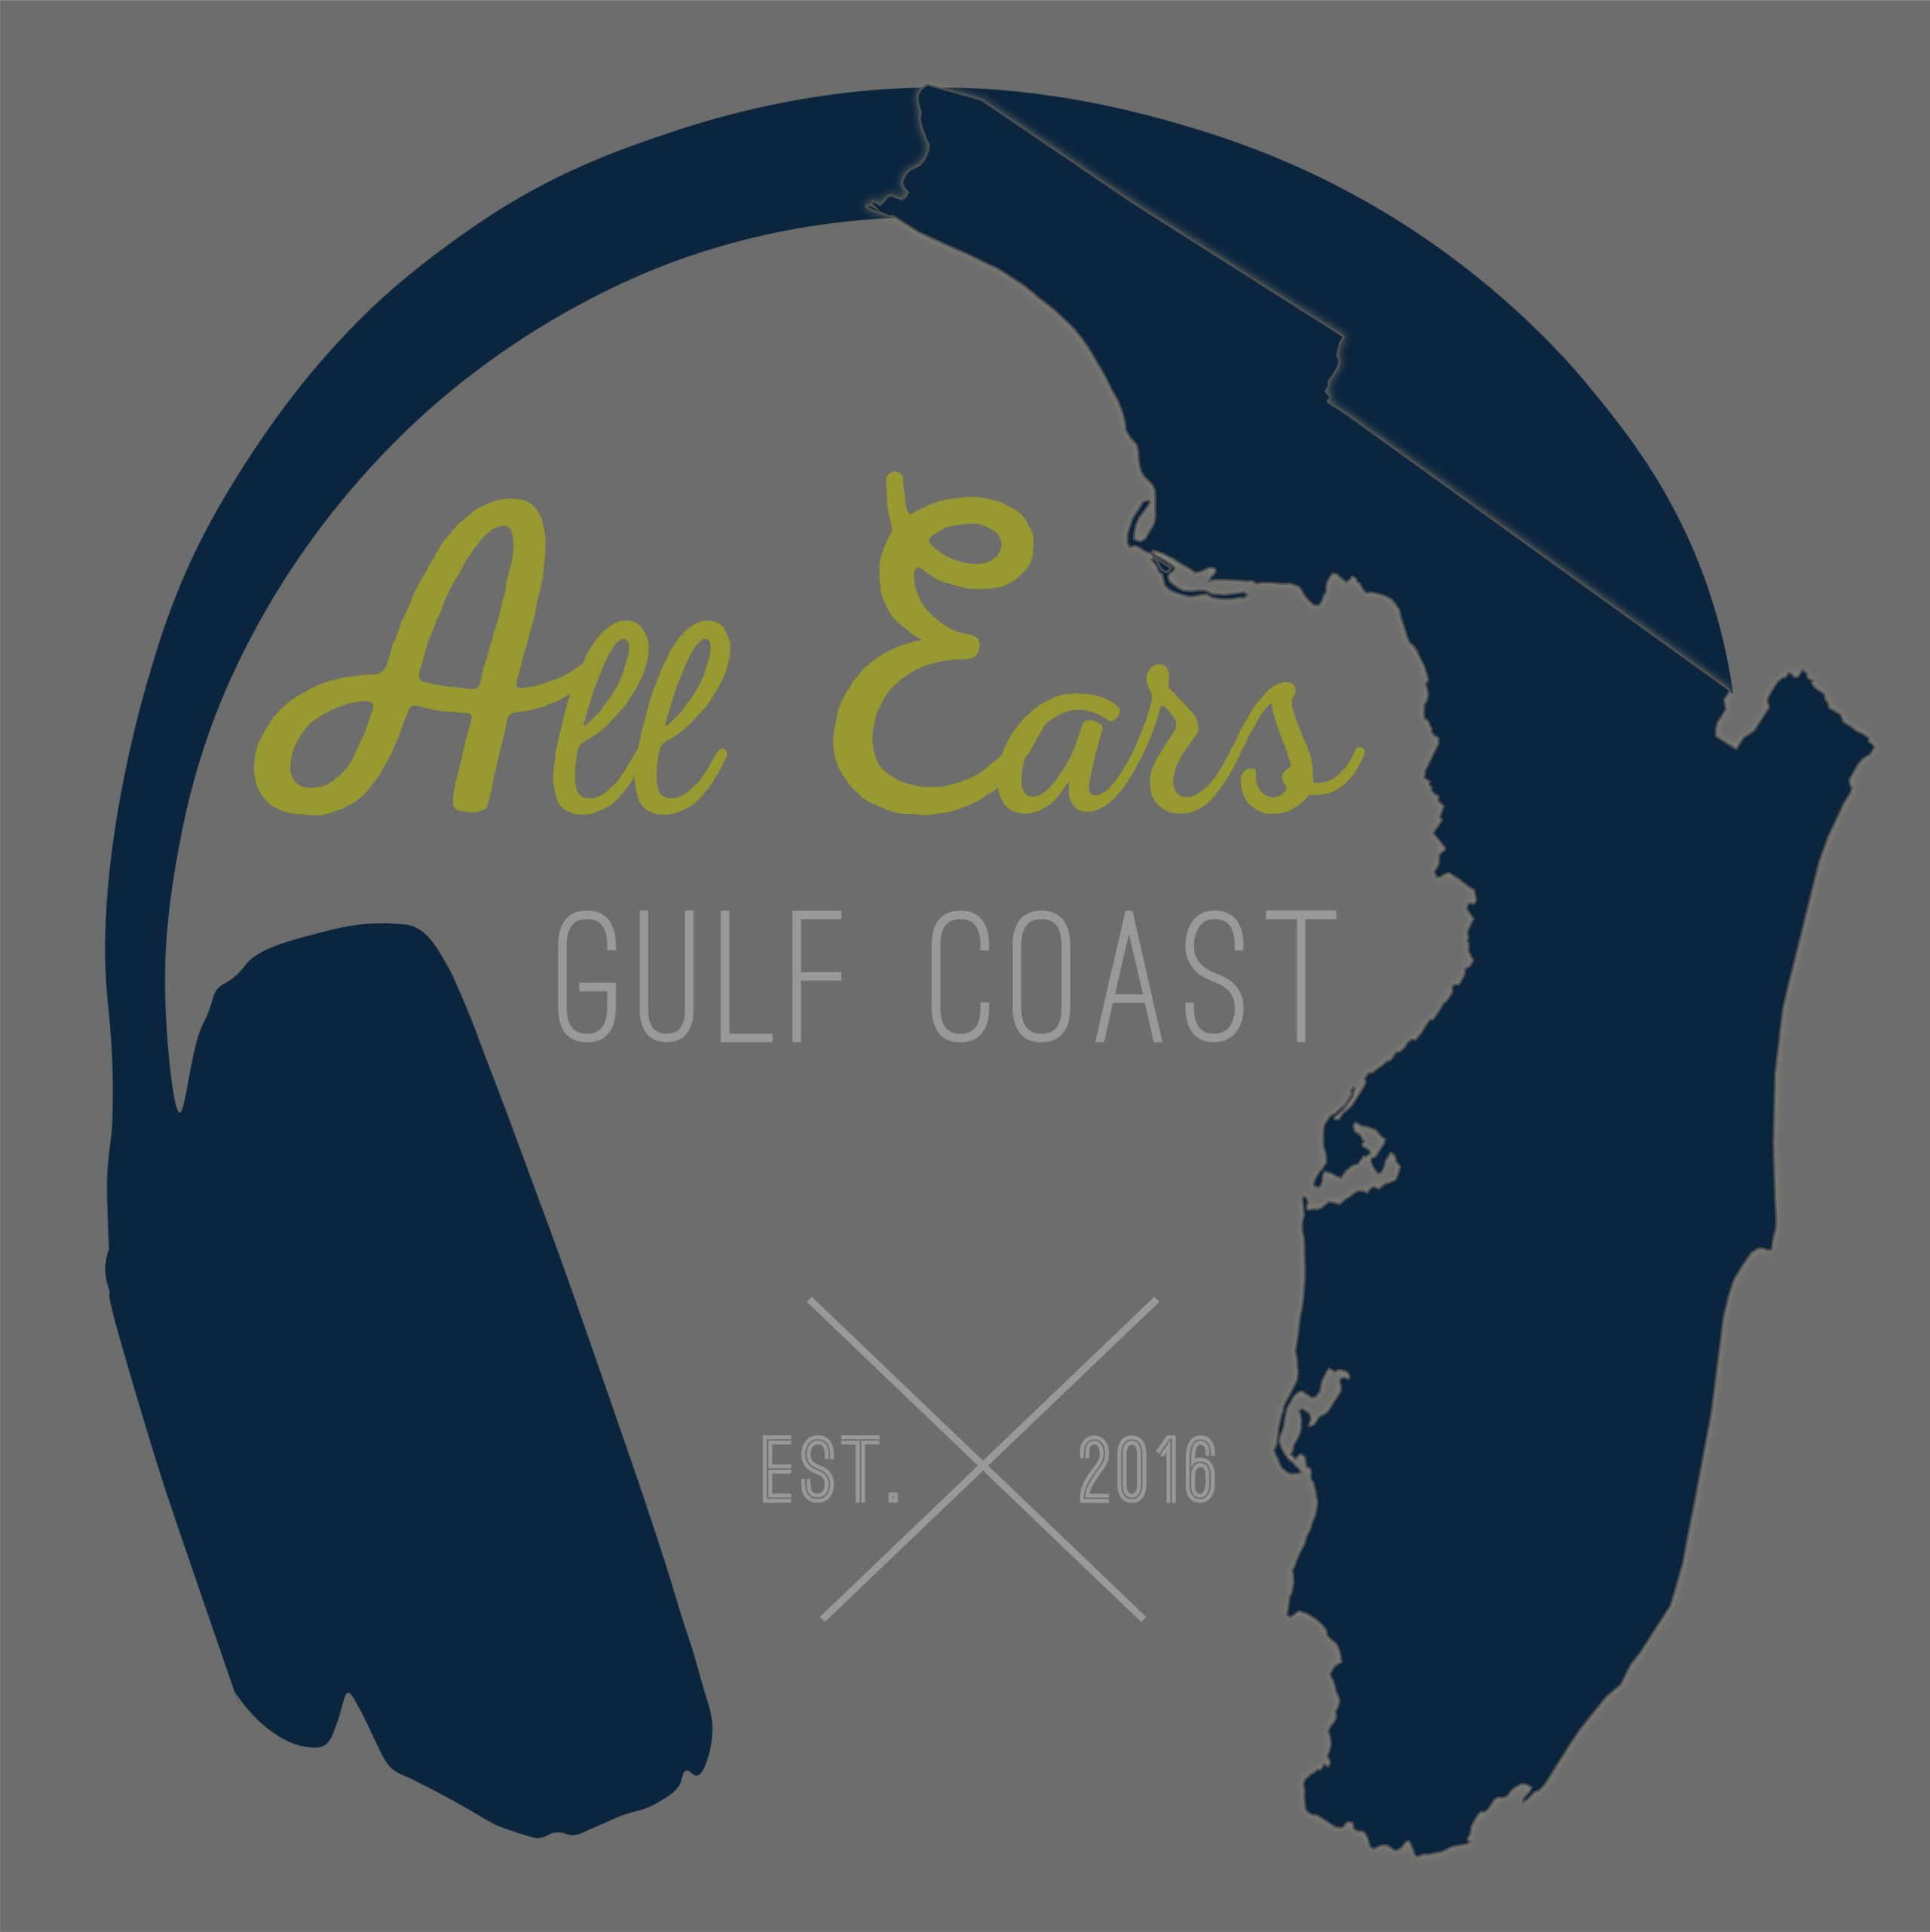 Voyage Real Estate & The All Ears Gulf Coast Podcast